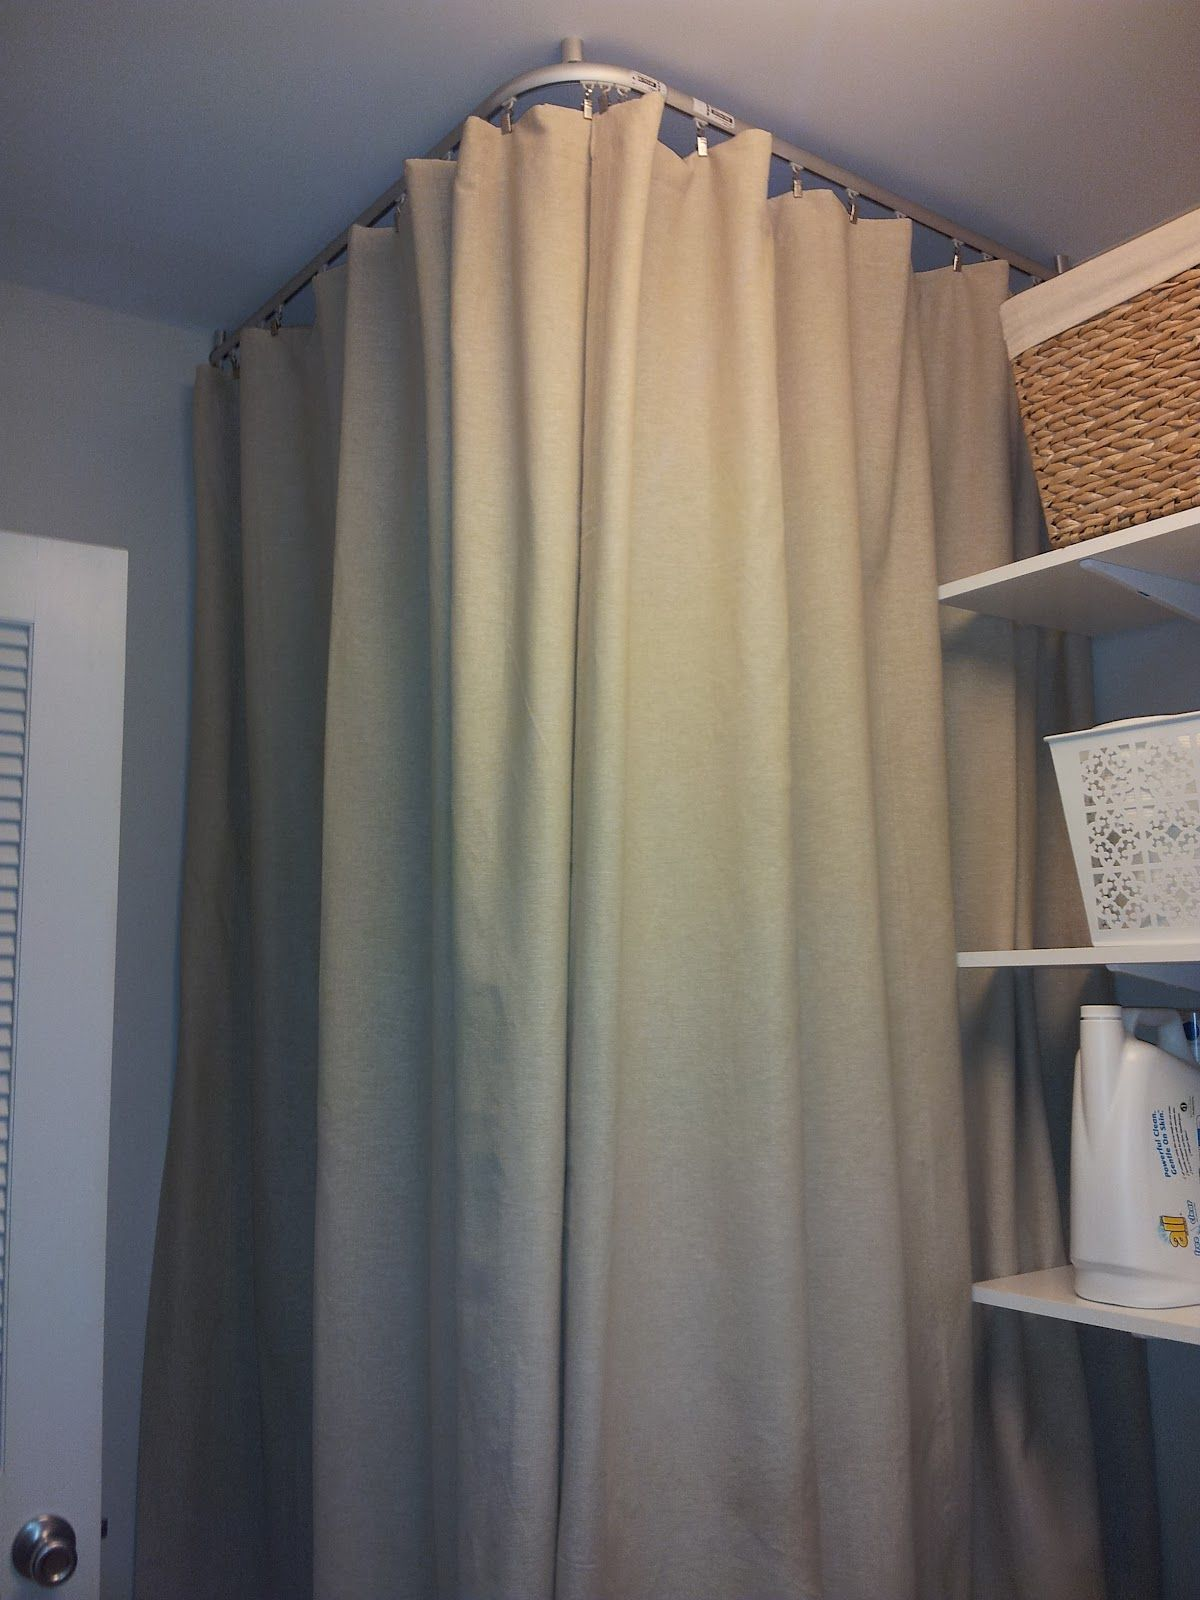 Found A Way To Hide Our Water Heater Kvartal Ceiling Mounted Curtain Track From Ikea On The